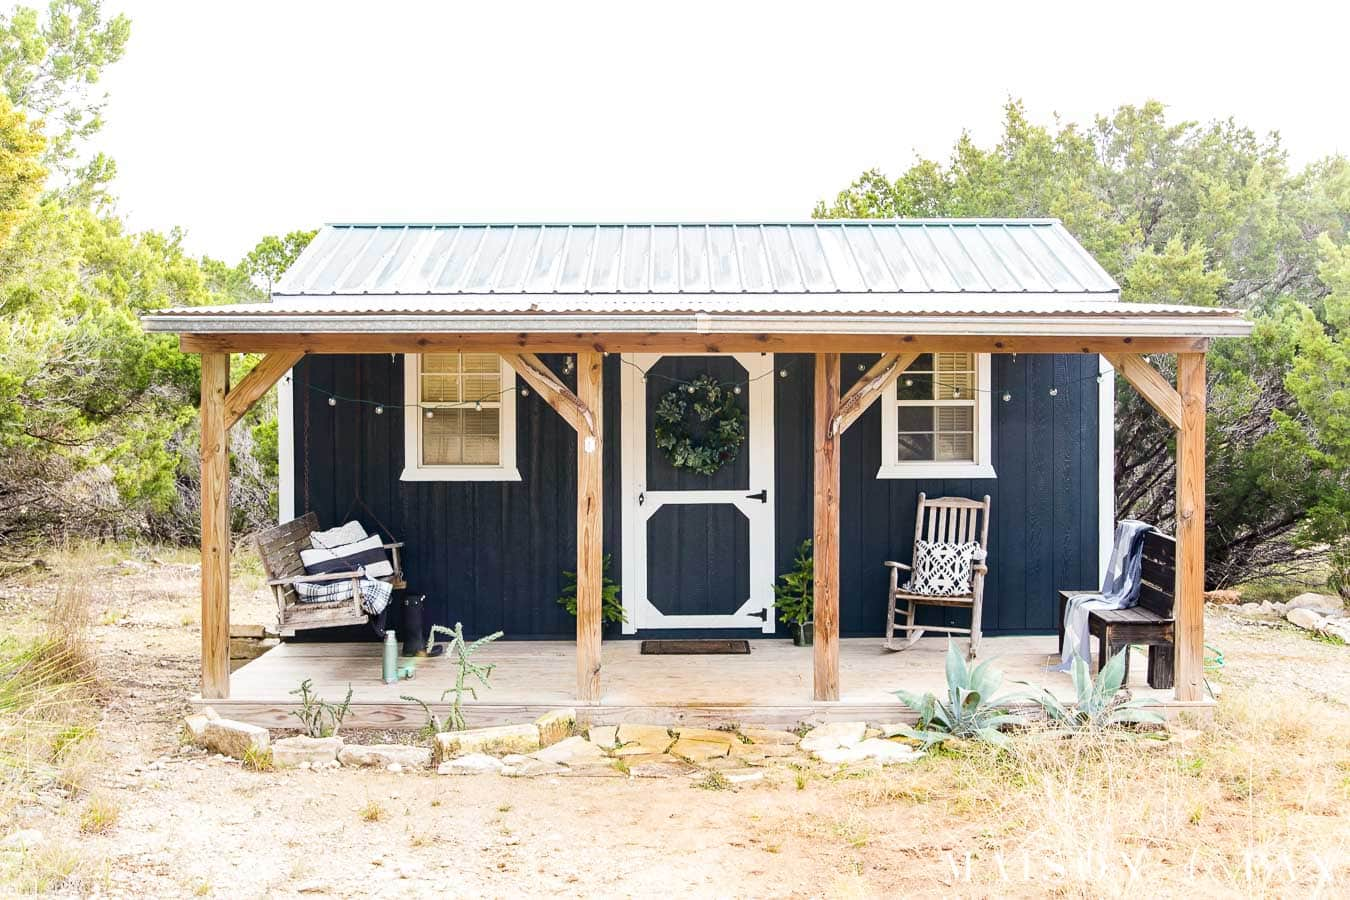 Black and white tiny house with deep front porch in the country